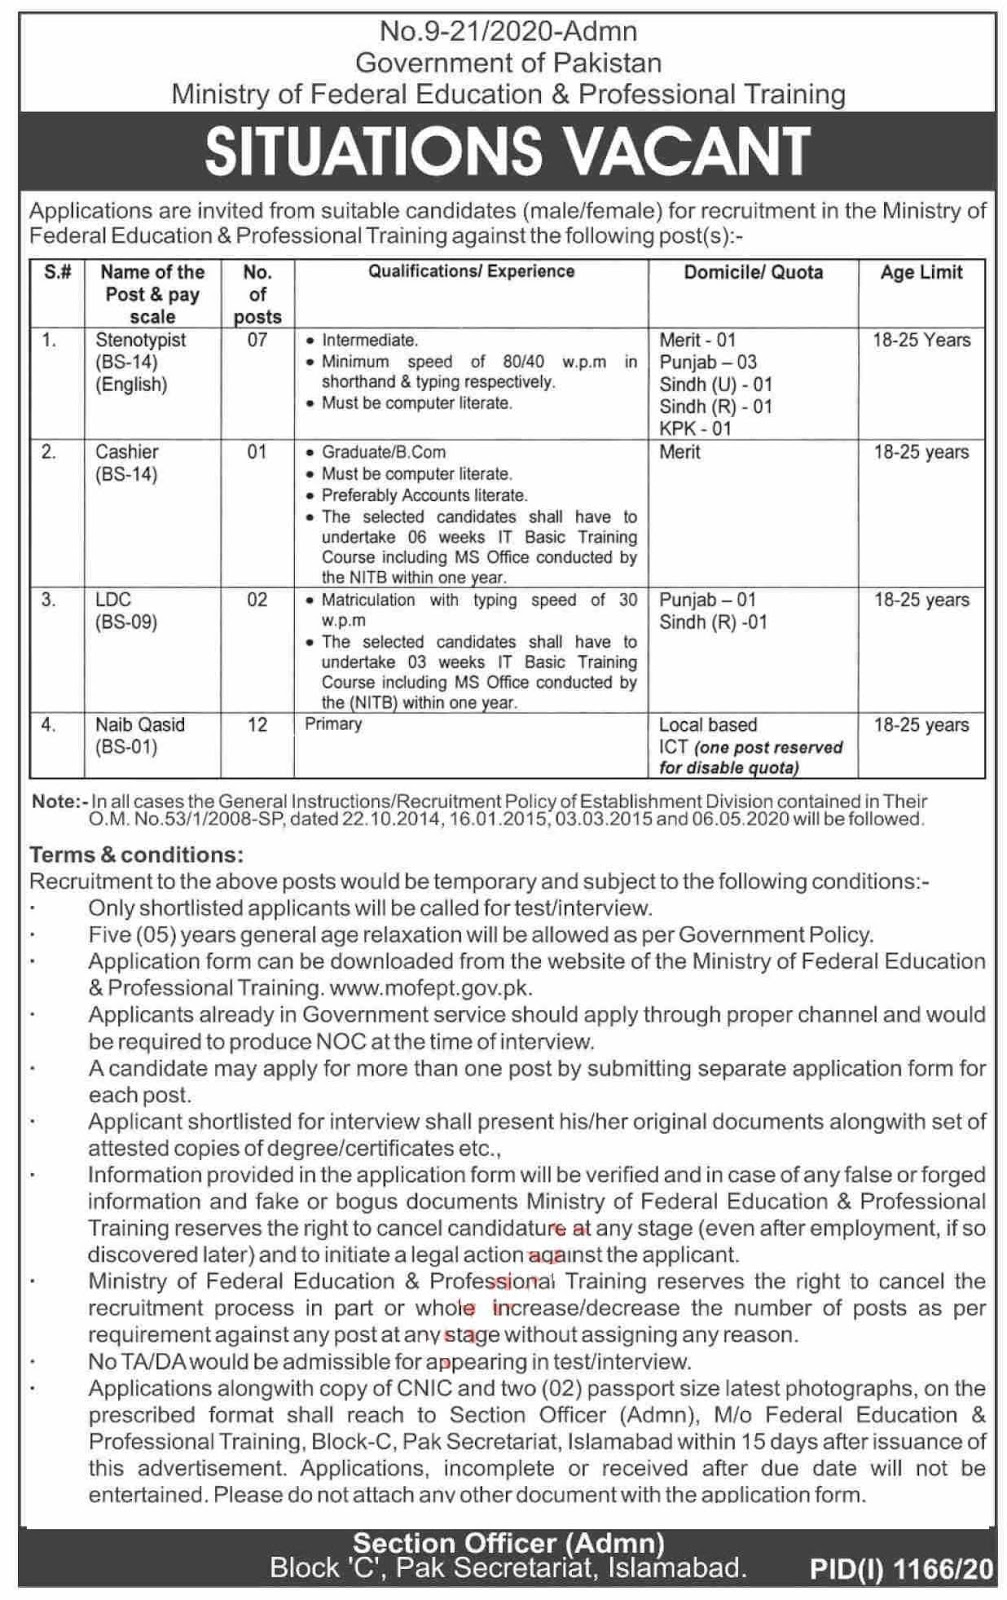 Ministry of Federal Education & Professional Training Jobs 2020 for Steno Typist, Cashier and more